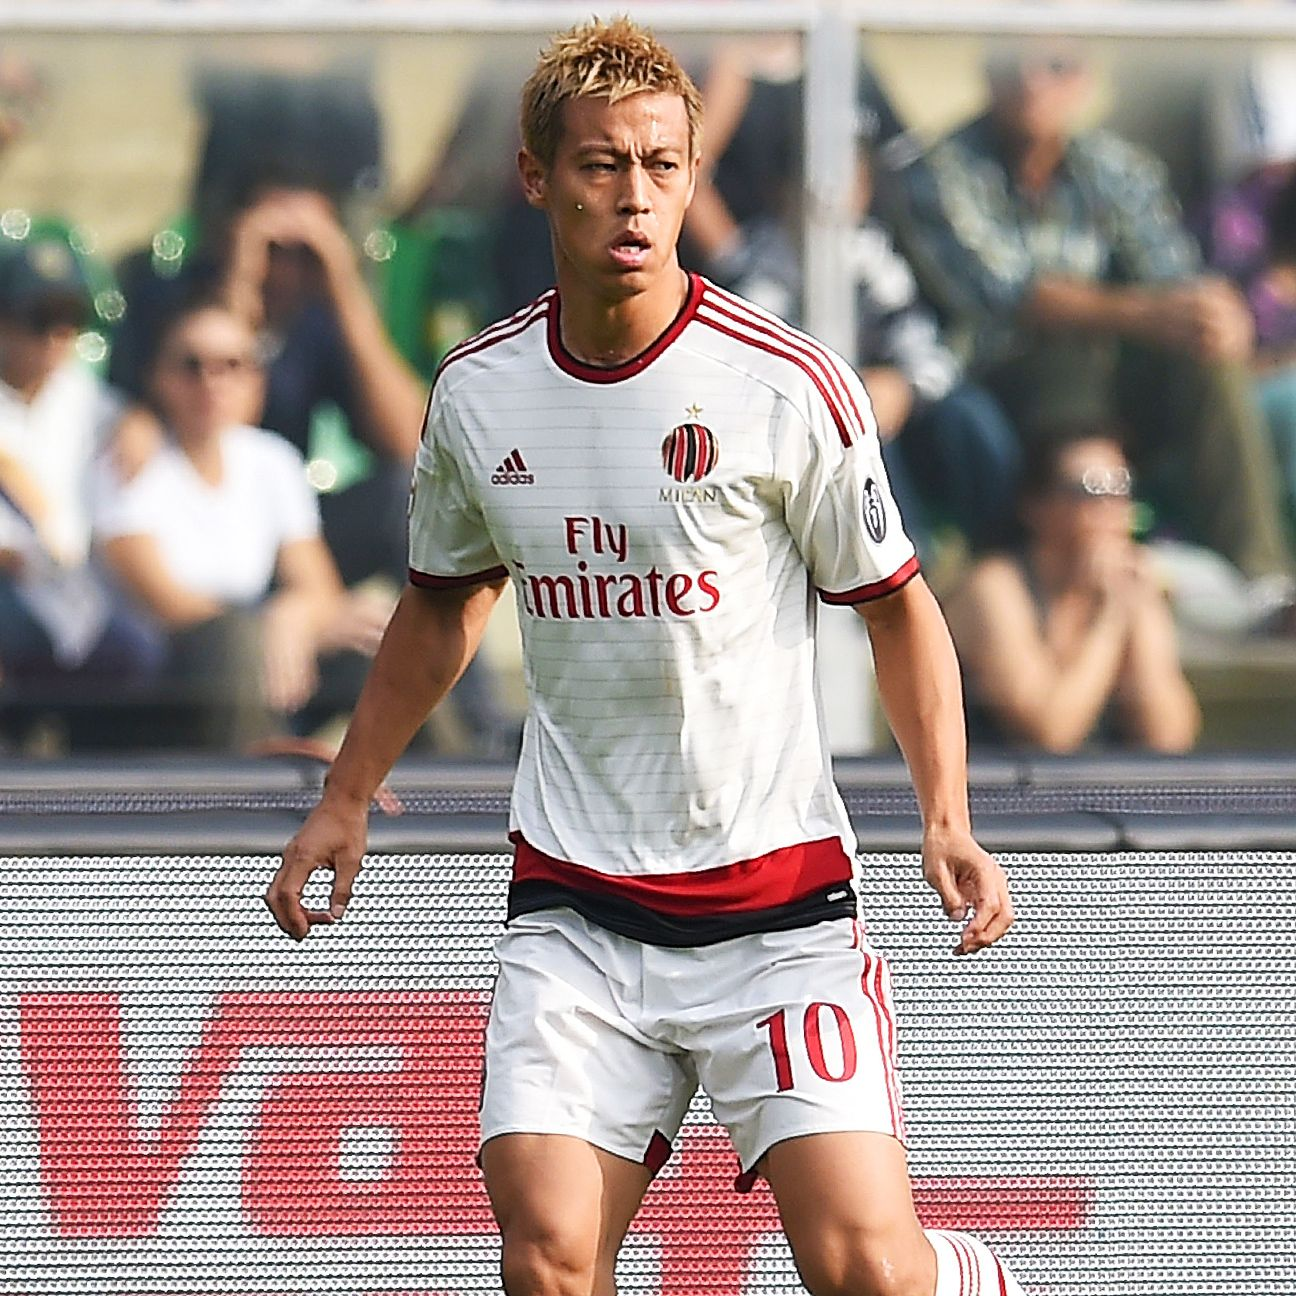 Keisuke Honda has found his footing at Milan under new boss Pippo Inzaghi.